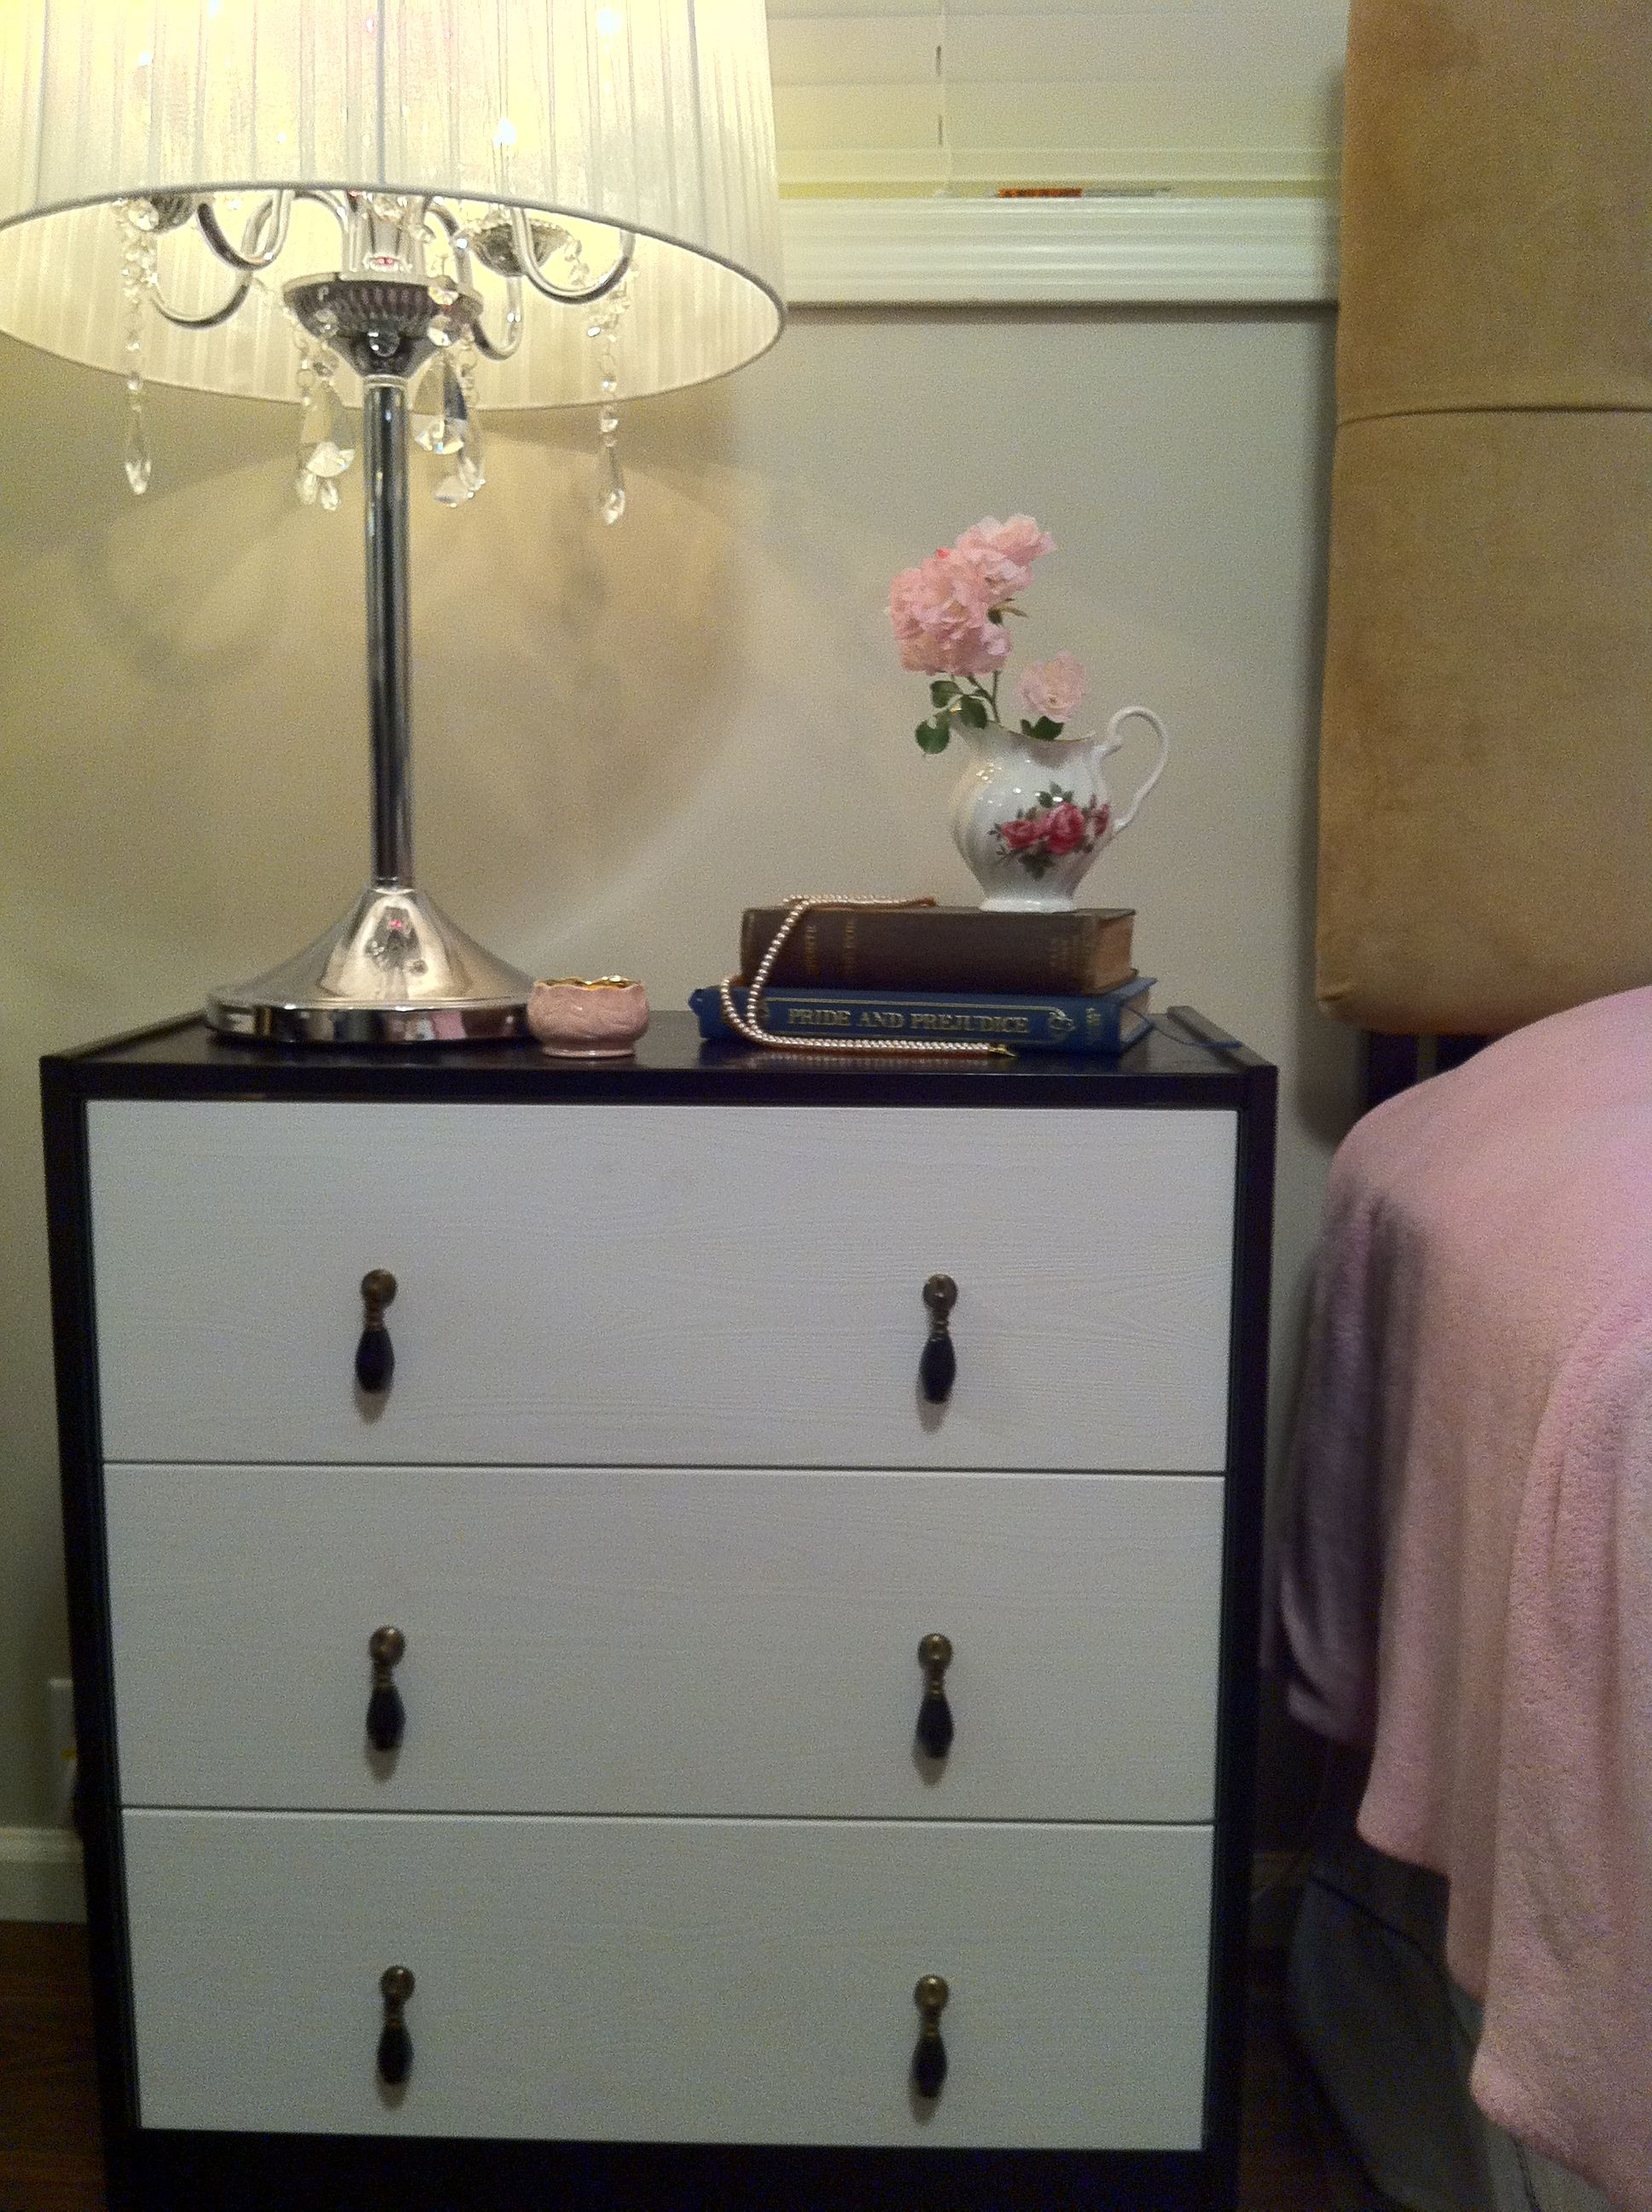 decor drawer pink lovely perfectly my fashion recycled accented the anthropologie pulls friend that chose beautifullyintended roses in furniture from